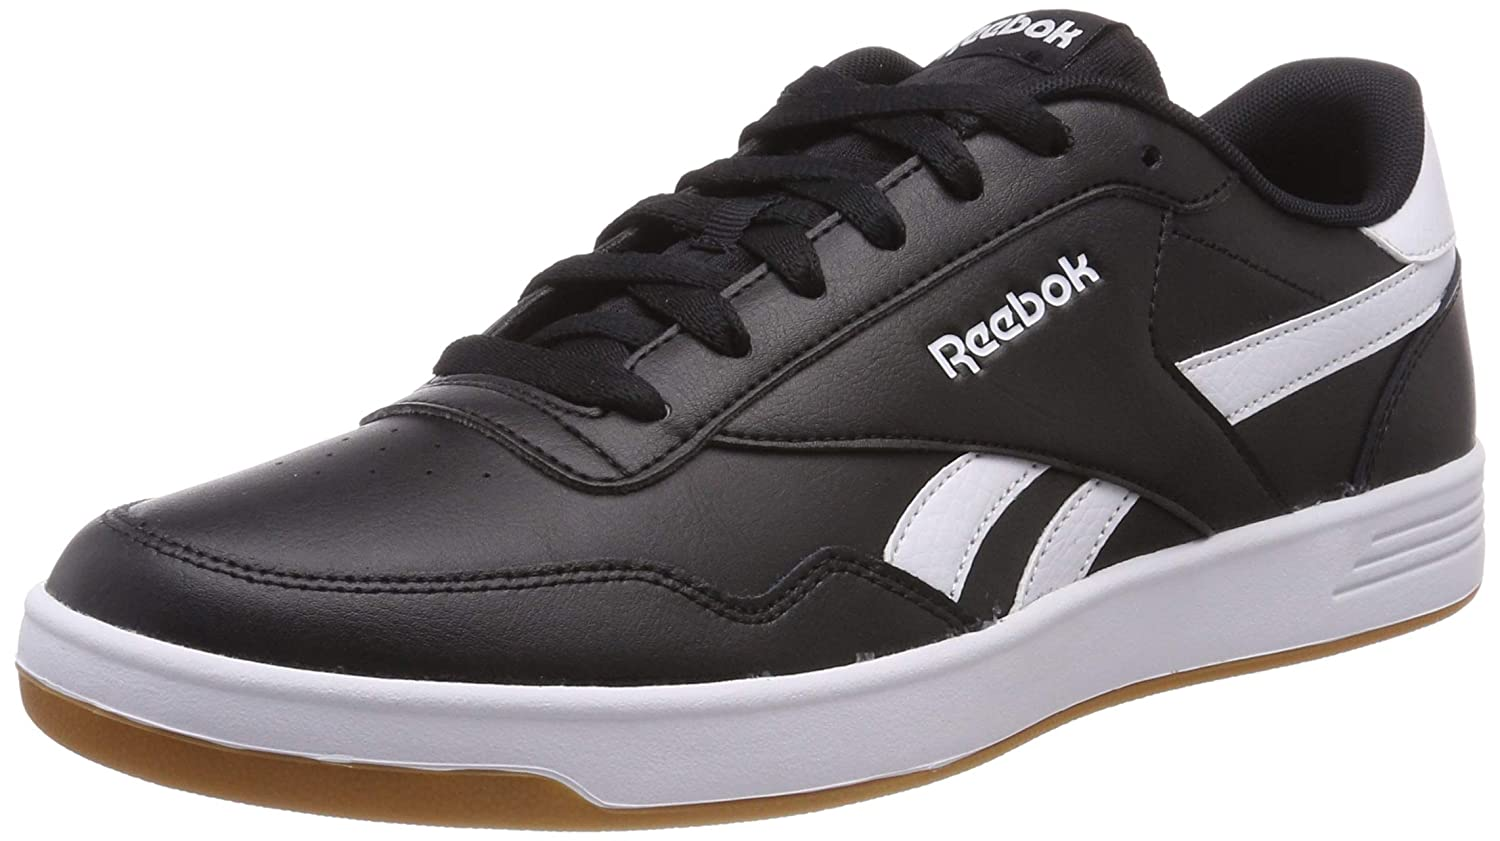 7769fd926 Reebok Men's Royal Techque T Tennis Shoes: Buy Online at Low Prices in India  - Amazon.in